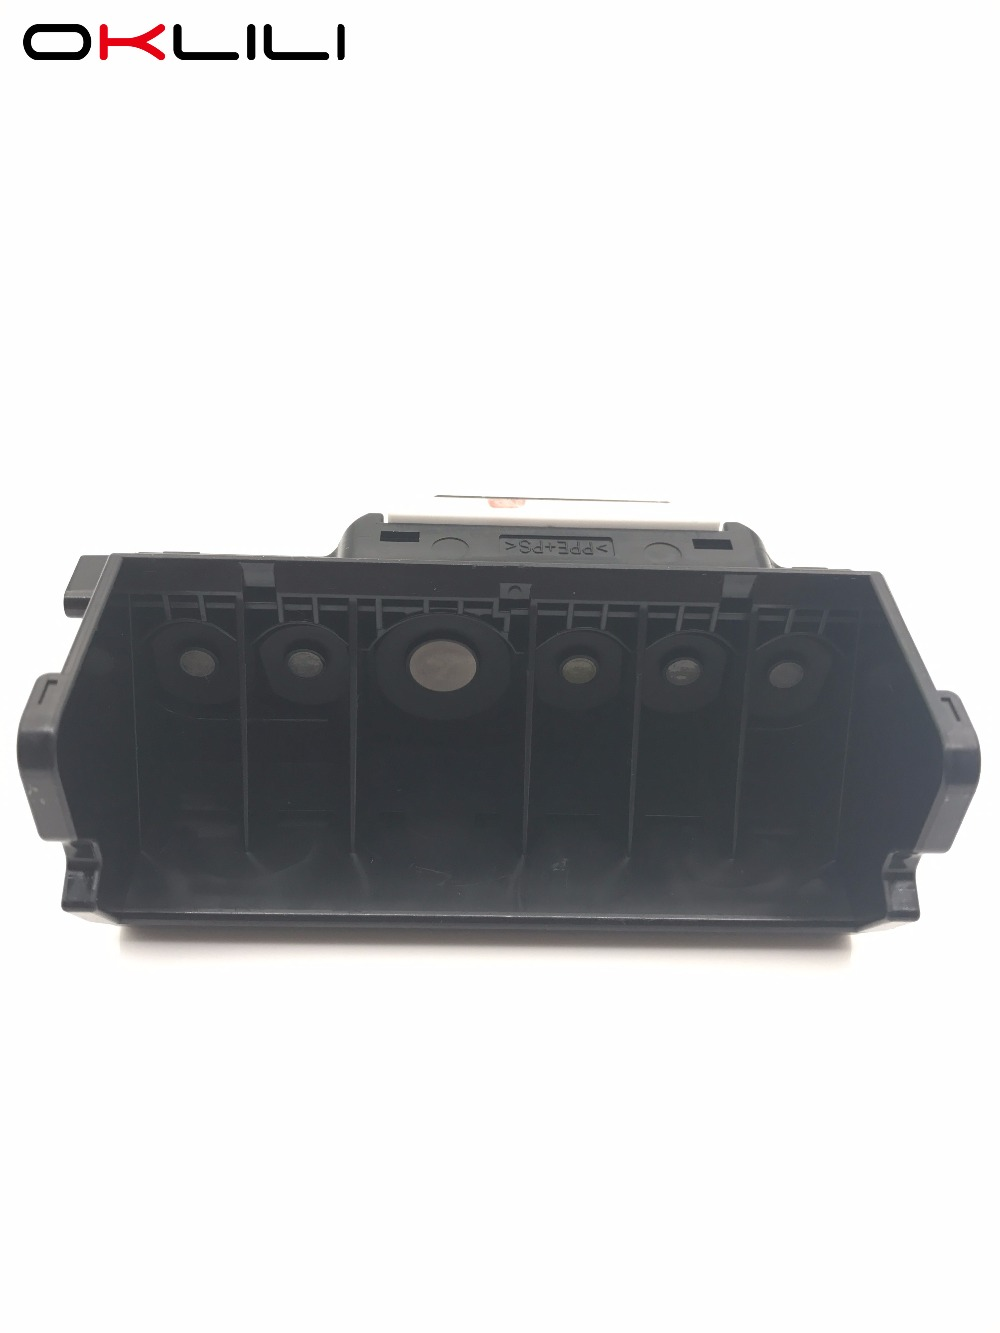 QY6-0078 QY6-0078-000 Printhead Printer Print Head for Canon MP990 MP996 MG6120 MG6140 MG6180 MG6280 MG8120 MG8180 MG8280 MG6250 cute sheep animal cartoon women winter home slippers for indoor bedroom house warm cotton shoes adult plush flats christmas gift